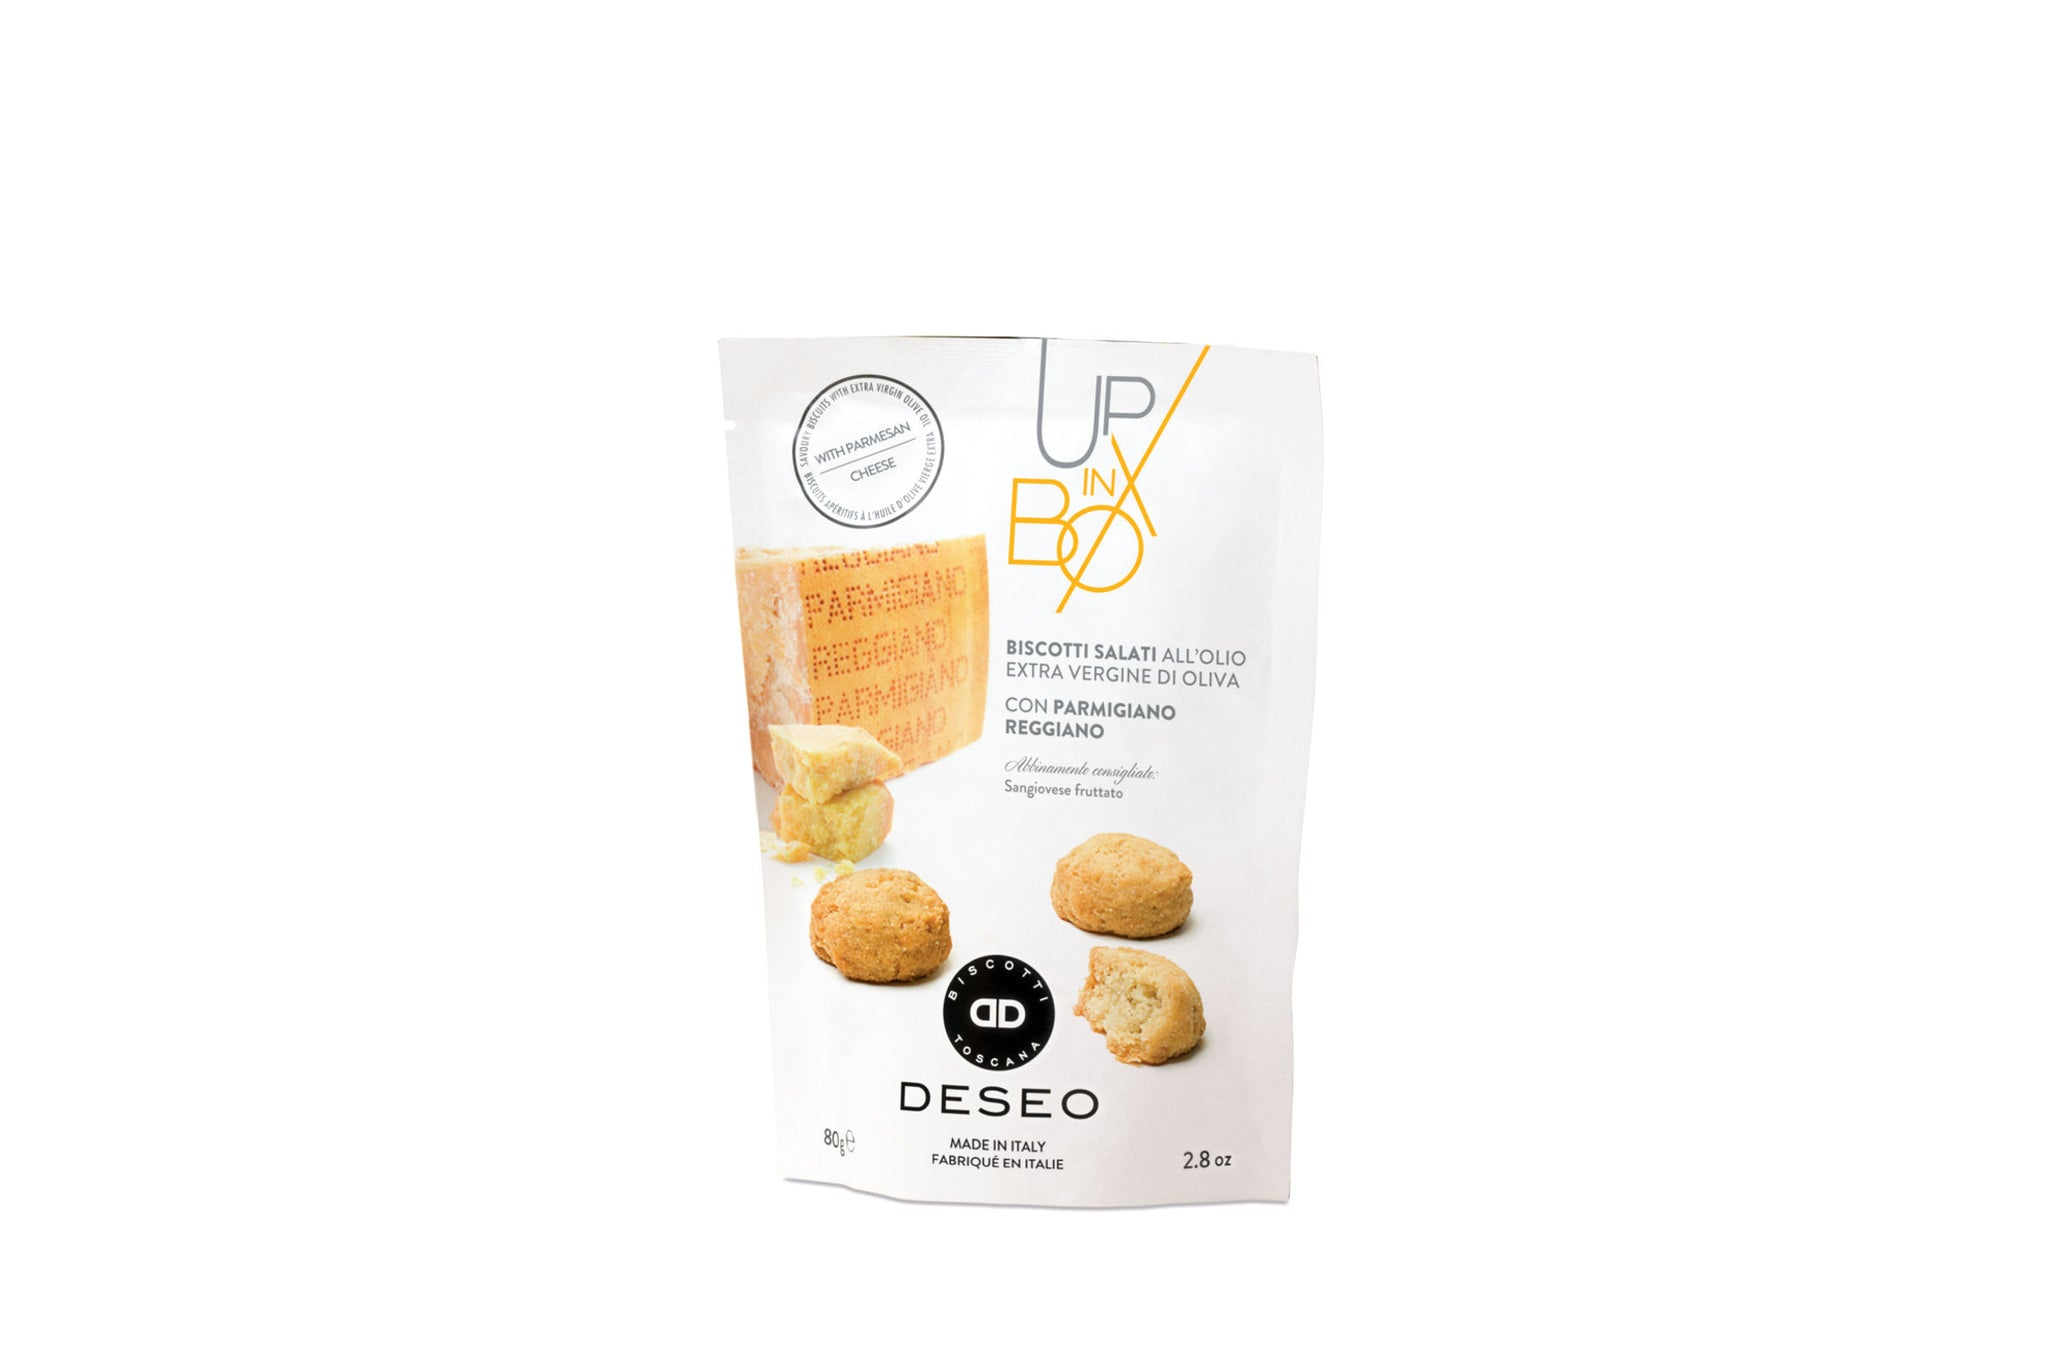 Deseo Parmesan Savoury Aperitivo Biscuits 80g Made in Tuscany Shop the Red Beetle